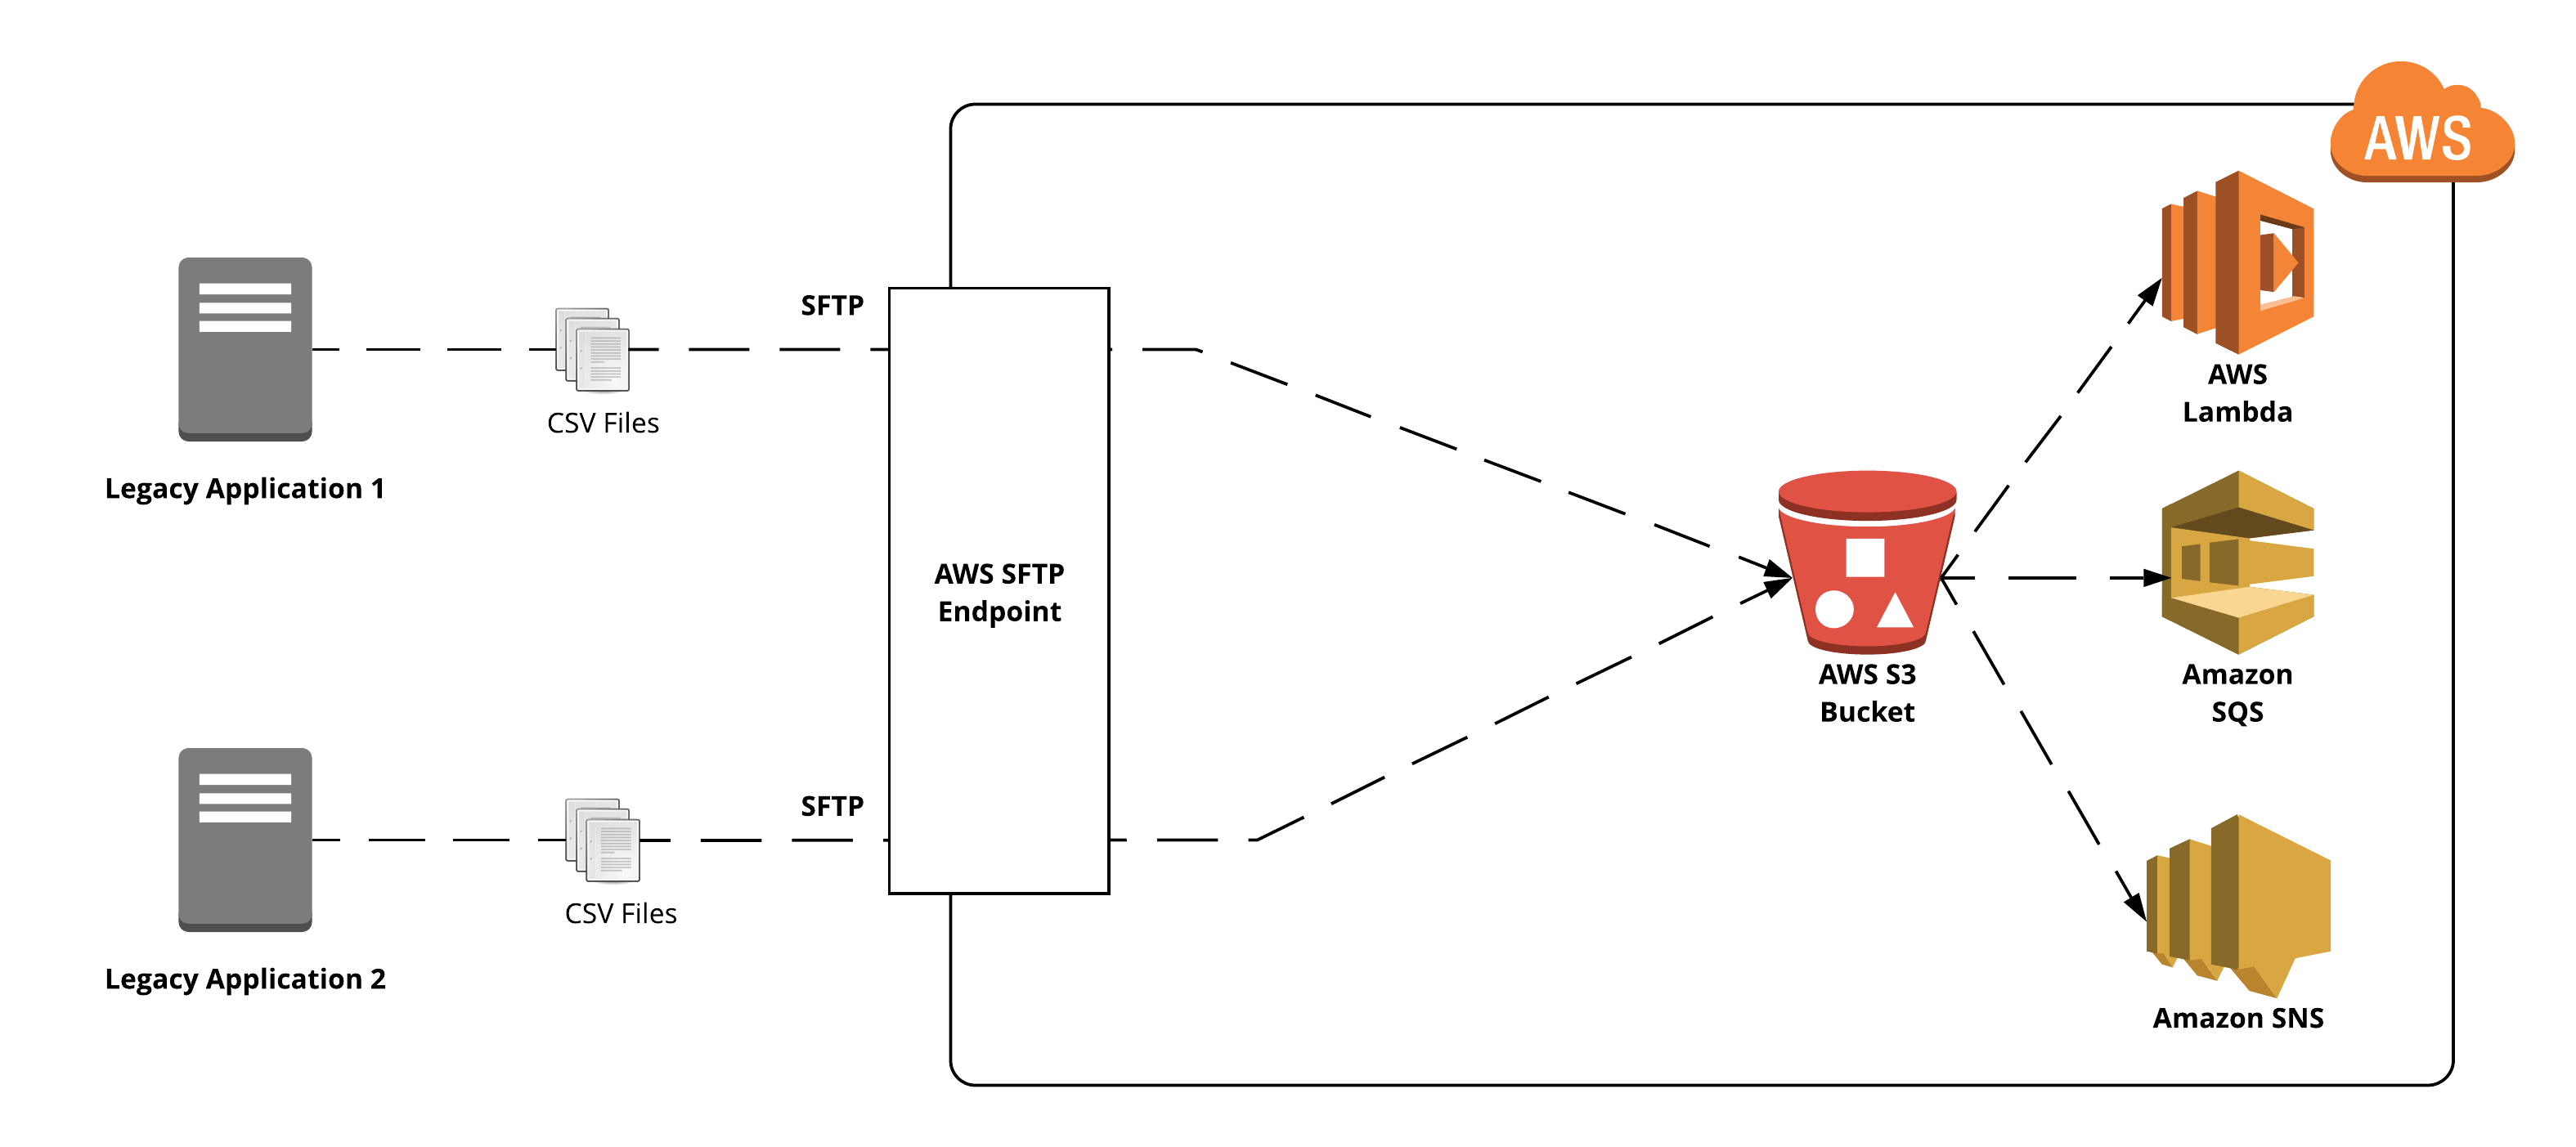 Integration With Third-Party Systems Using AWS Transfer for SFTP